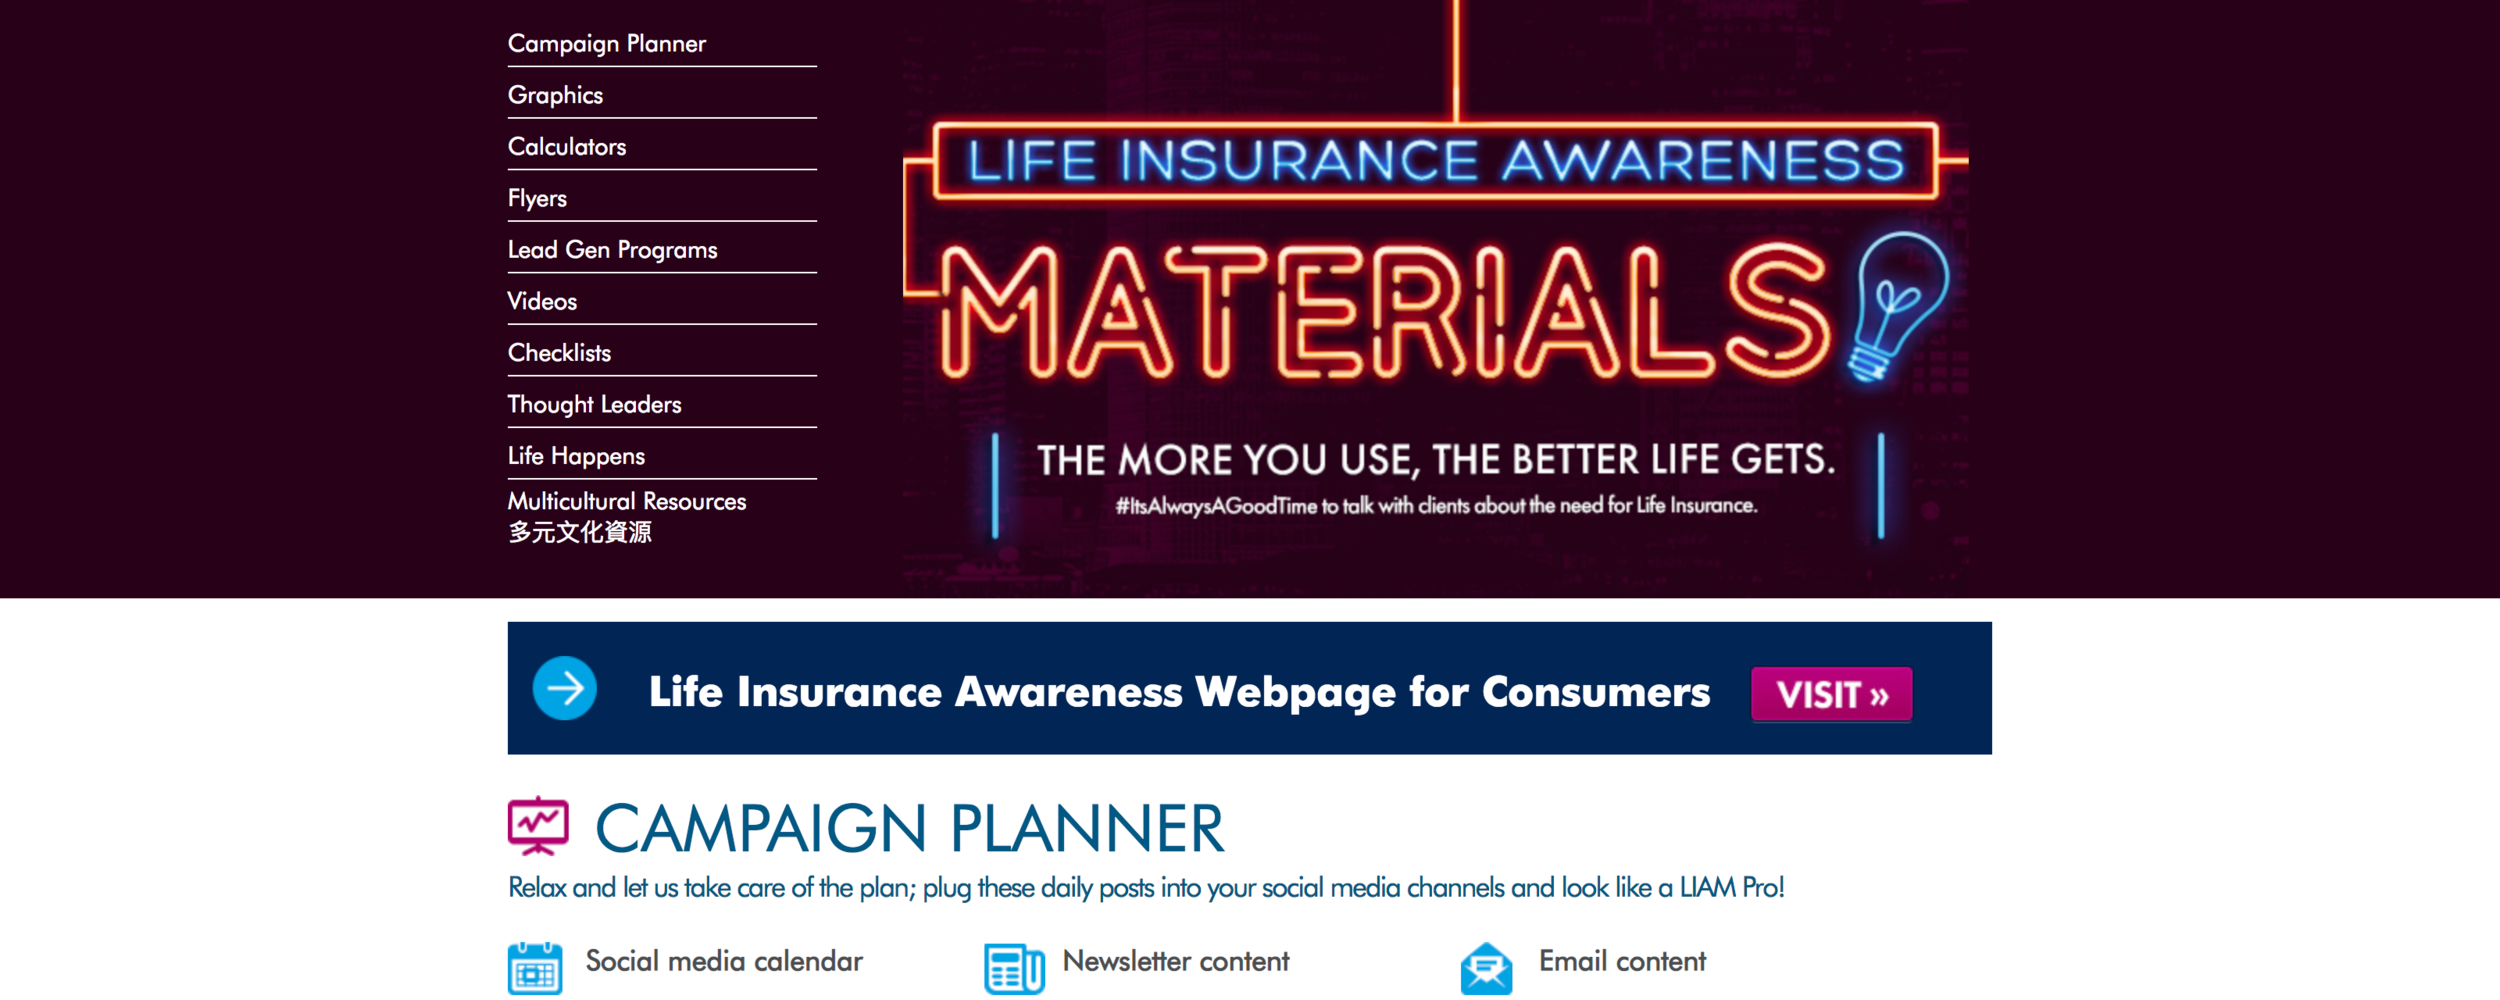 Life Insurance Awareness Materials - Materials to use with consumers to raise awareness, prospect, present and close. Includes videos, calculators, infographics, flyers and much more.